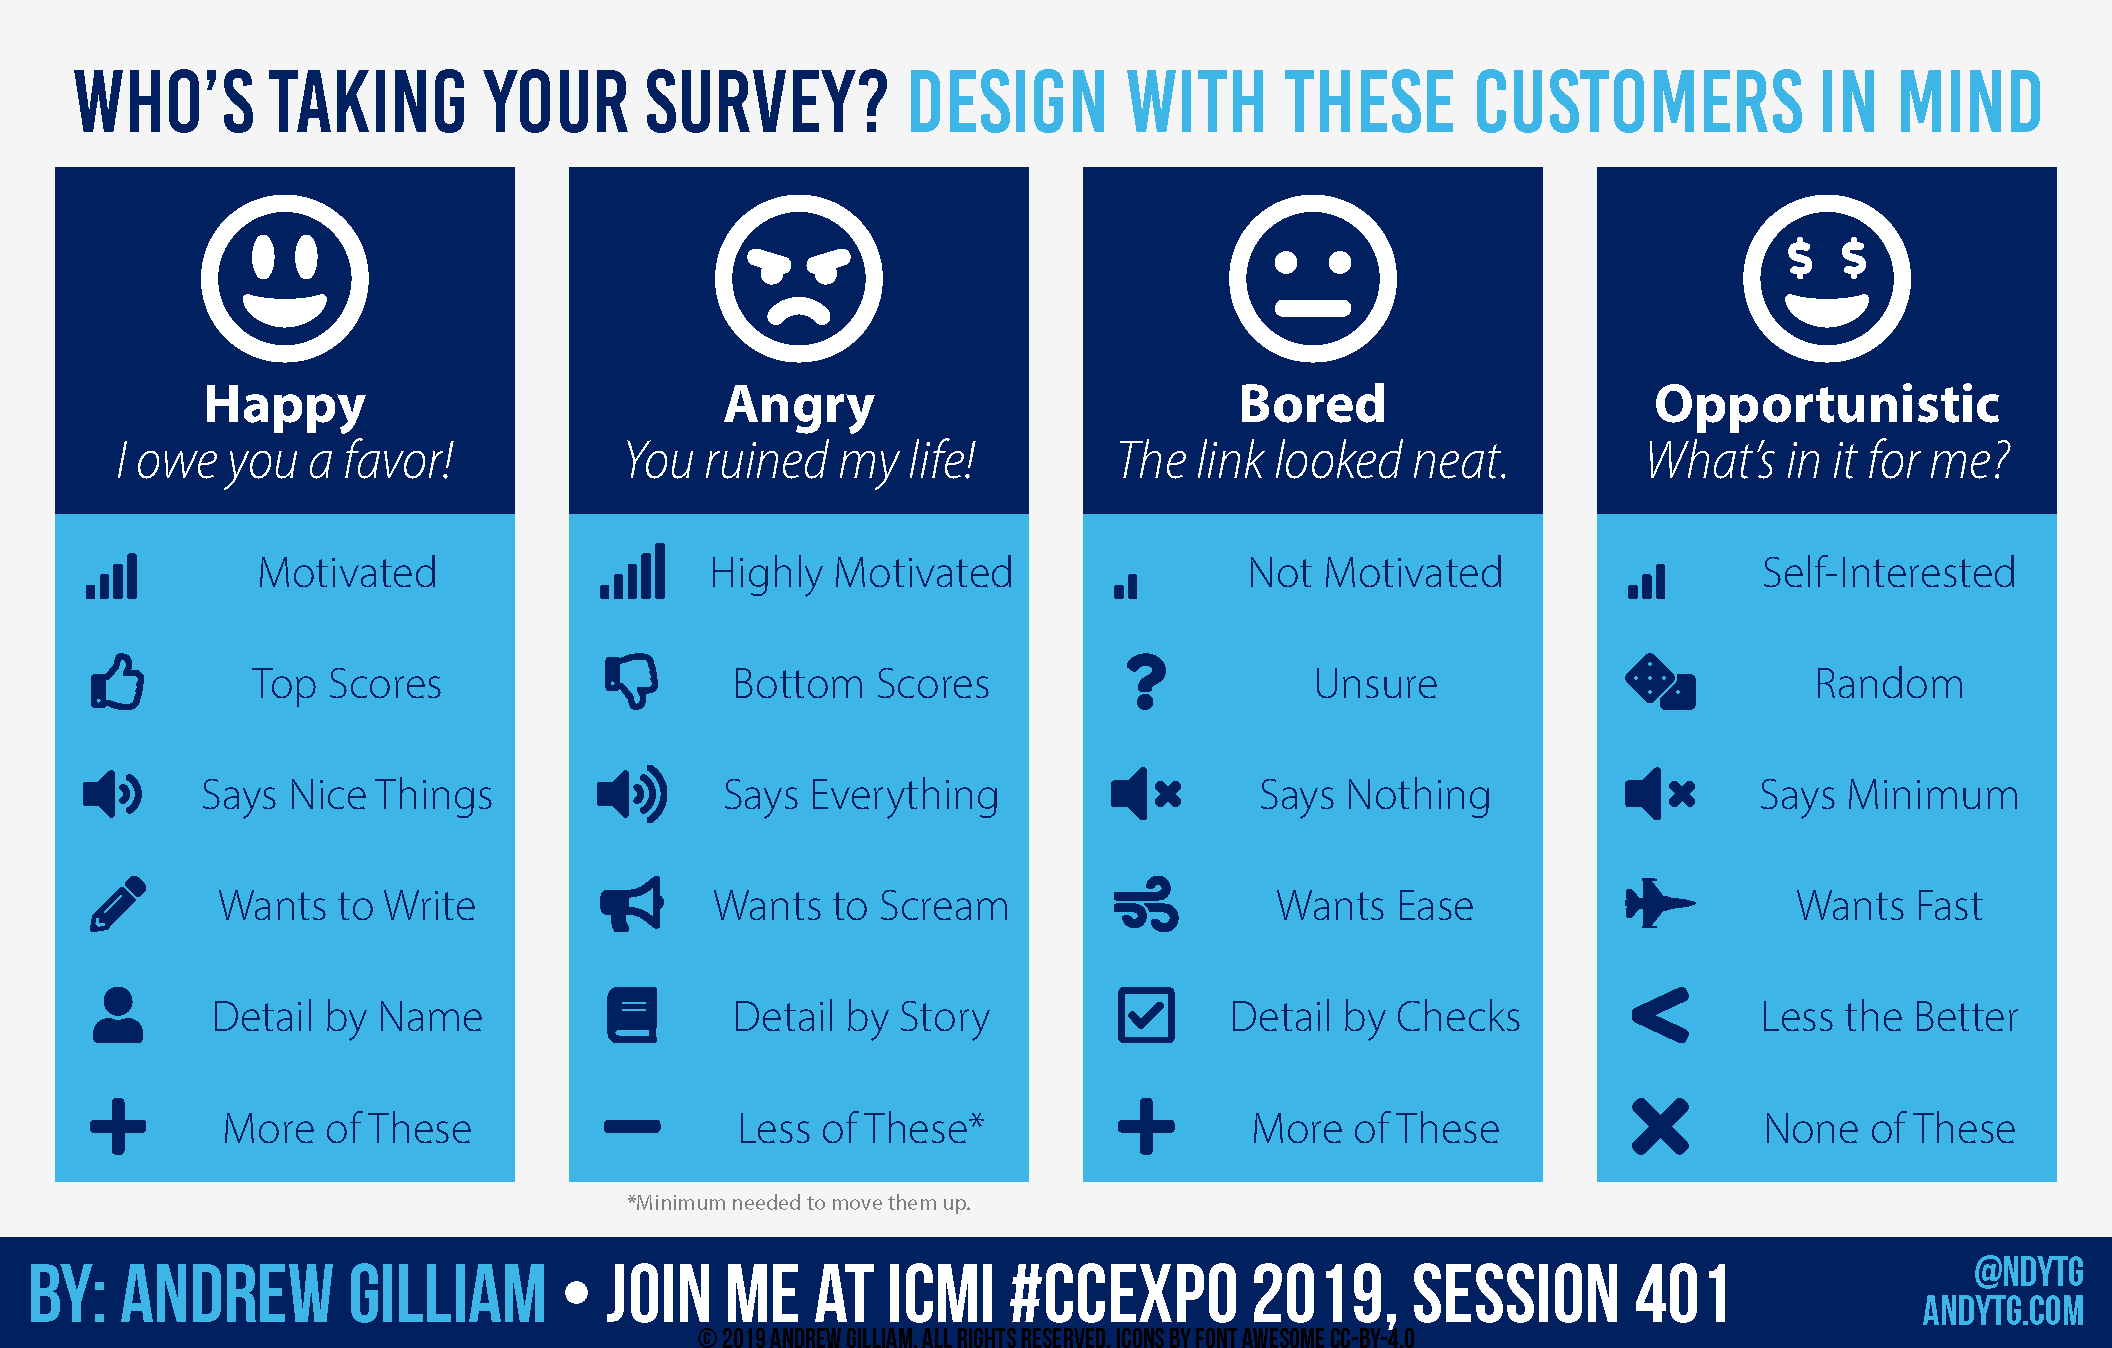 Who's Taking Your Survey: Design With These Customers In Mind